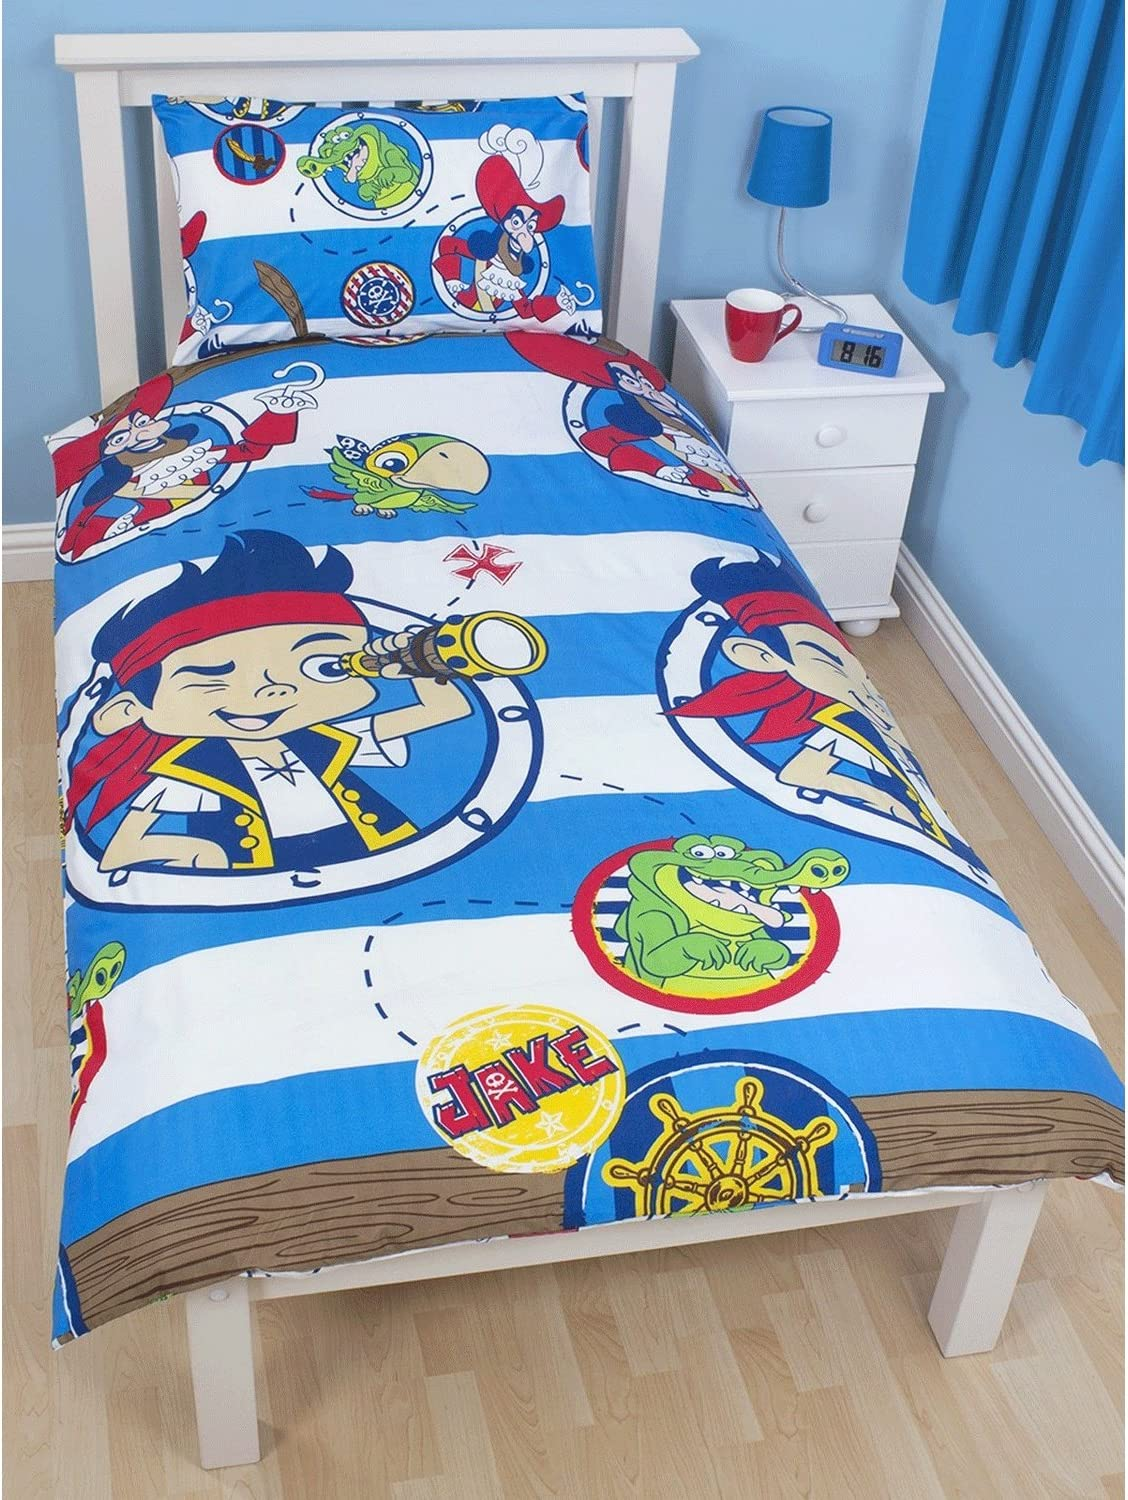 Single Disney Childrens//Kids Jake And The Never Land Pirates Doubloons Duvet Cover Bedding Set Single /& Double Blue//White